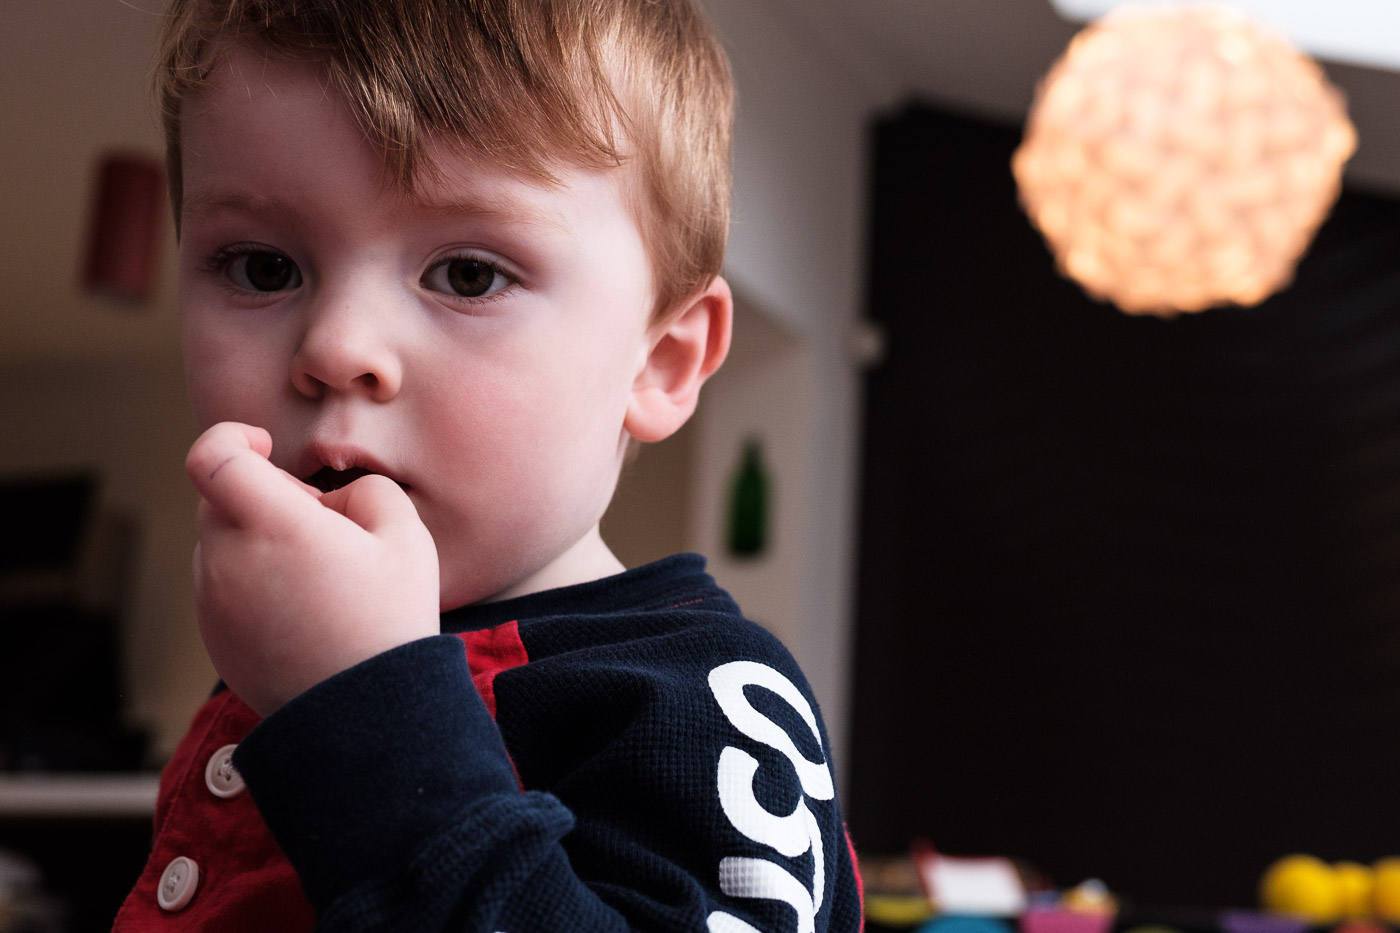 Portrait of boy lost in thought